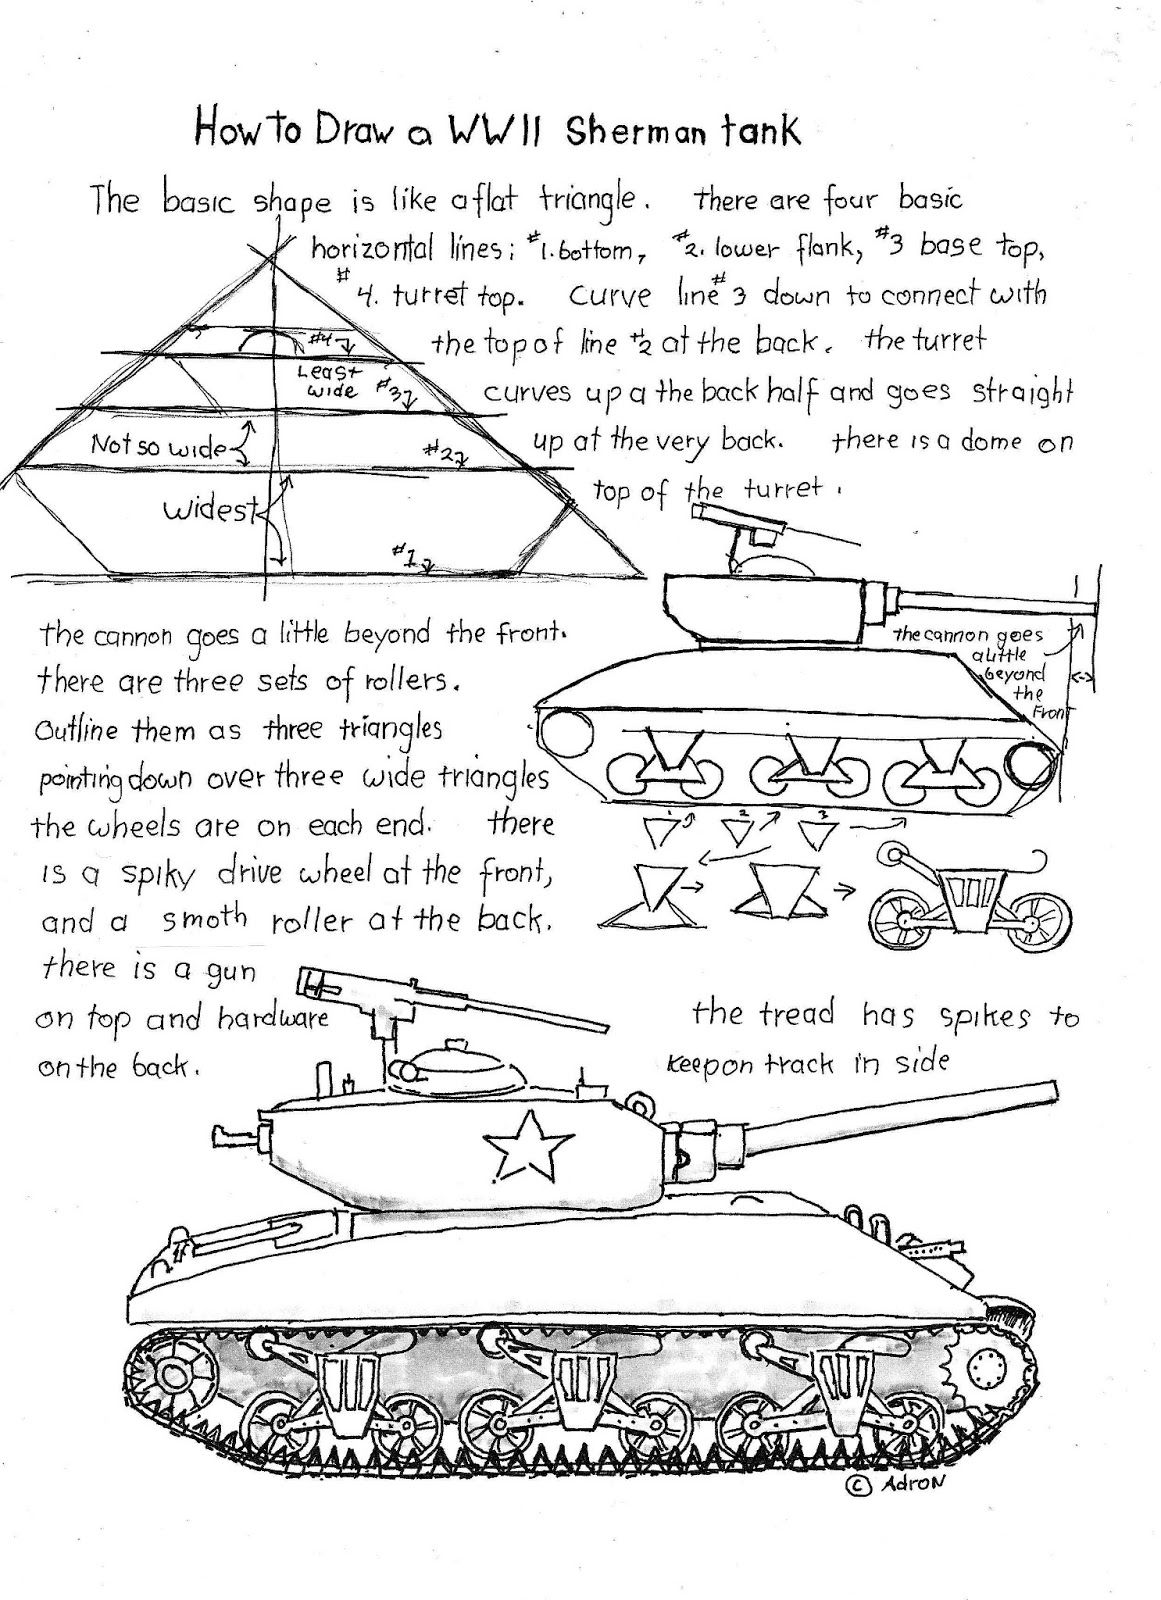 How To Draw A Wwii Sherman Tank Worksheet Read The Lesson At The Blog